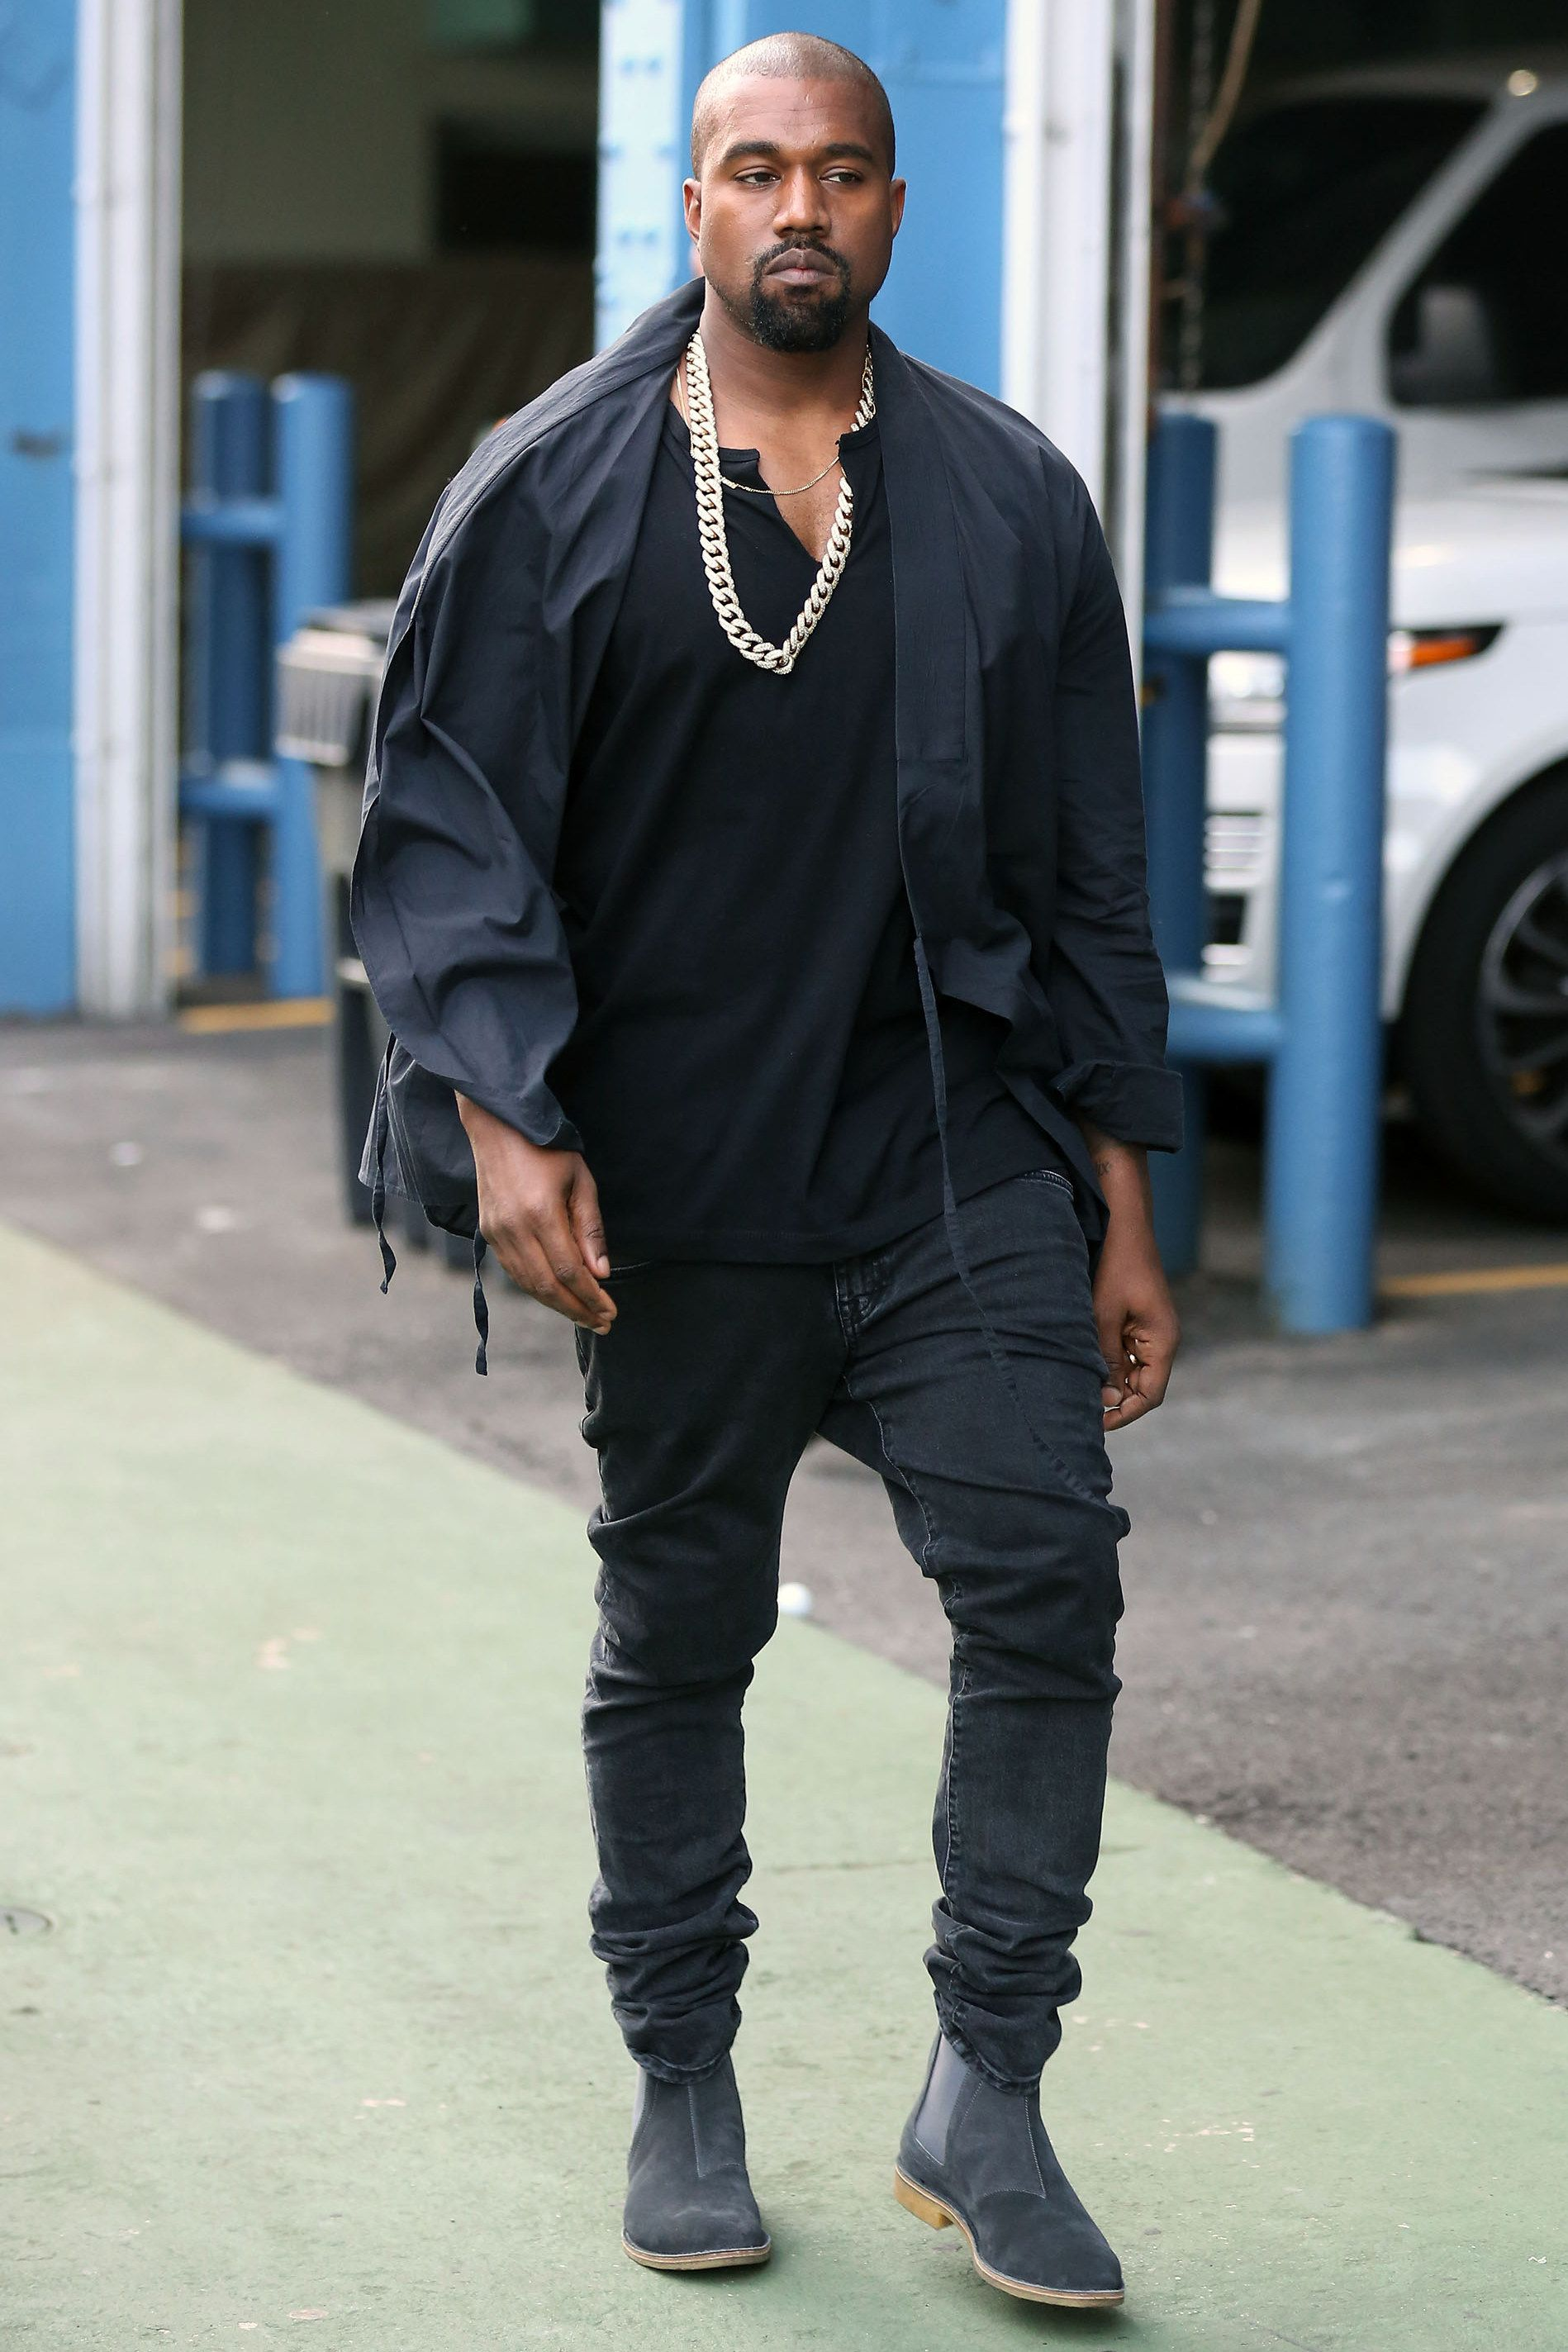 Kanye West Style 2015 07 04 15 Jpg 1898 2847 Nice Casual Outfits For Men Kanye West Style Kanye Fashion